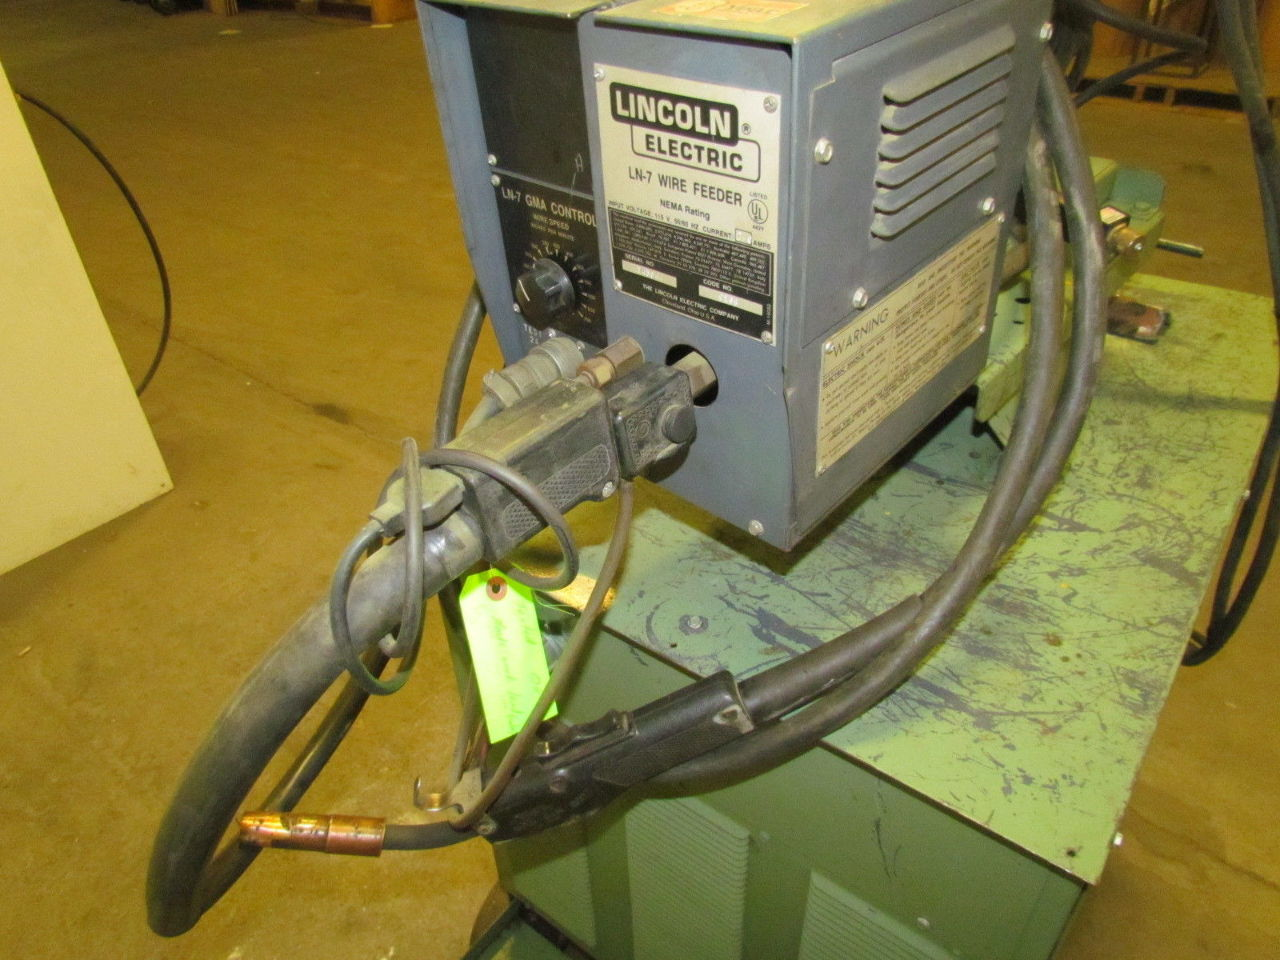 400 amp 3ph dc wire feed welder w cart cables feeder gun for Lincoln welder wire feed motor